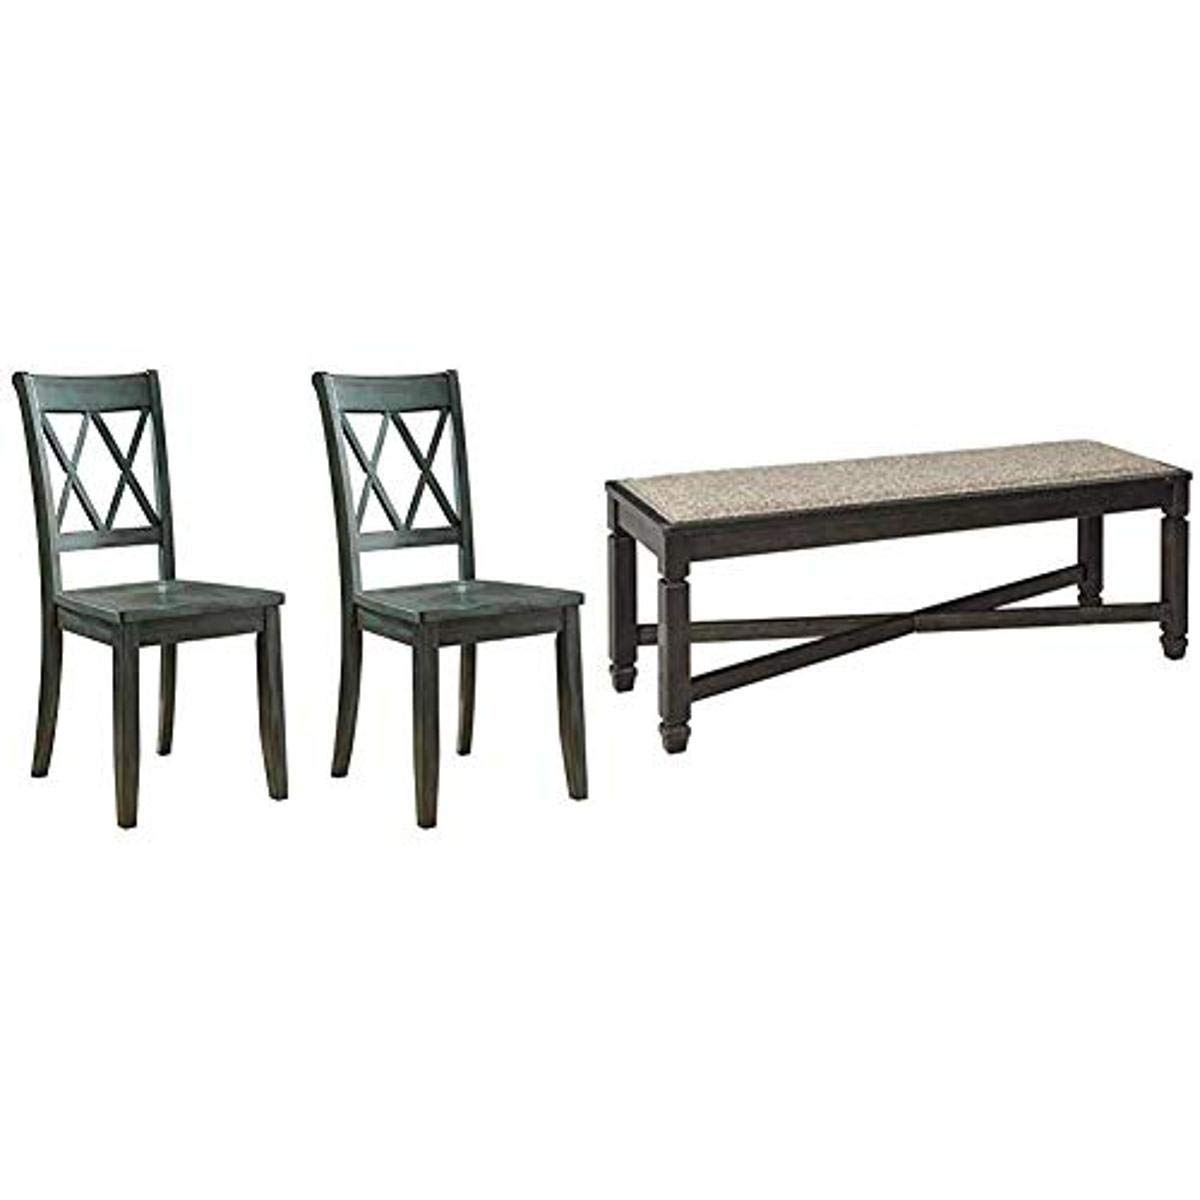 Ashley Furniture Signature Design - Mestler Dining Room Side Chair - Wood Seat - Set of 2 - Blue/Green & Tyler Creek Upholstered Dining Room Bench - Two-Tone - Textured Antique Black Finish